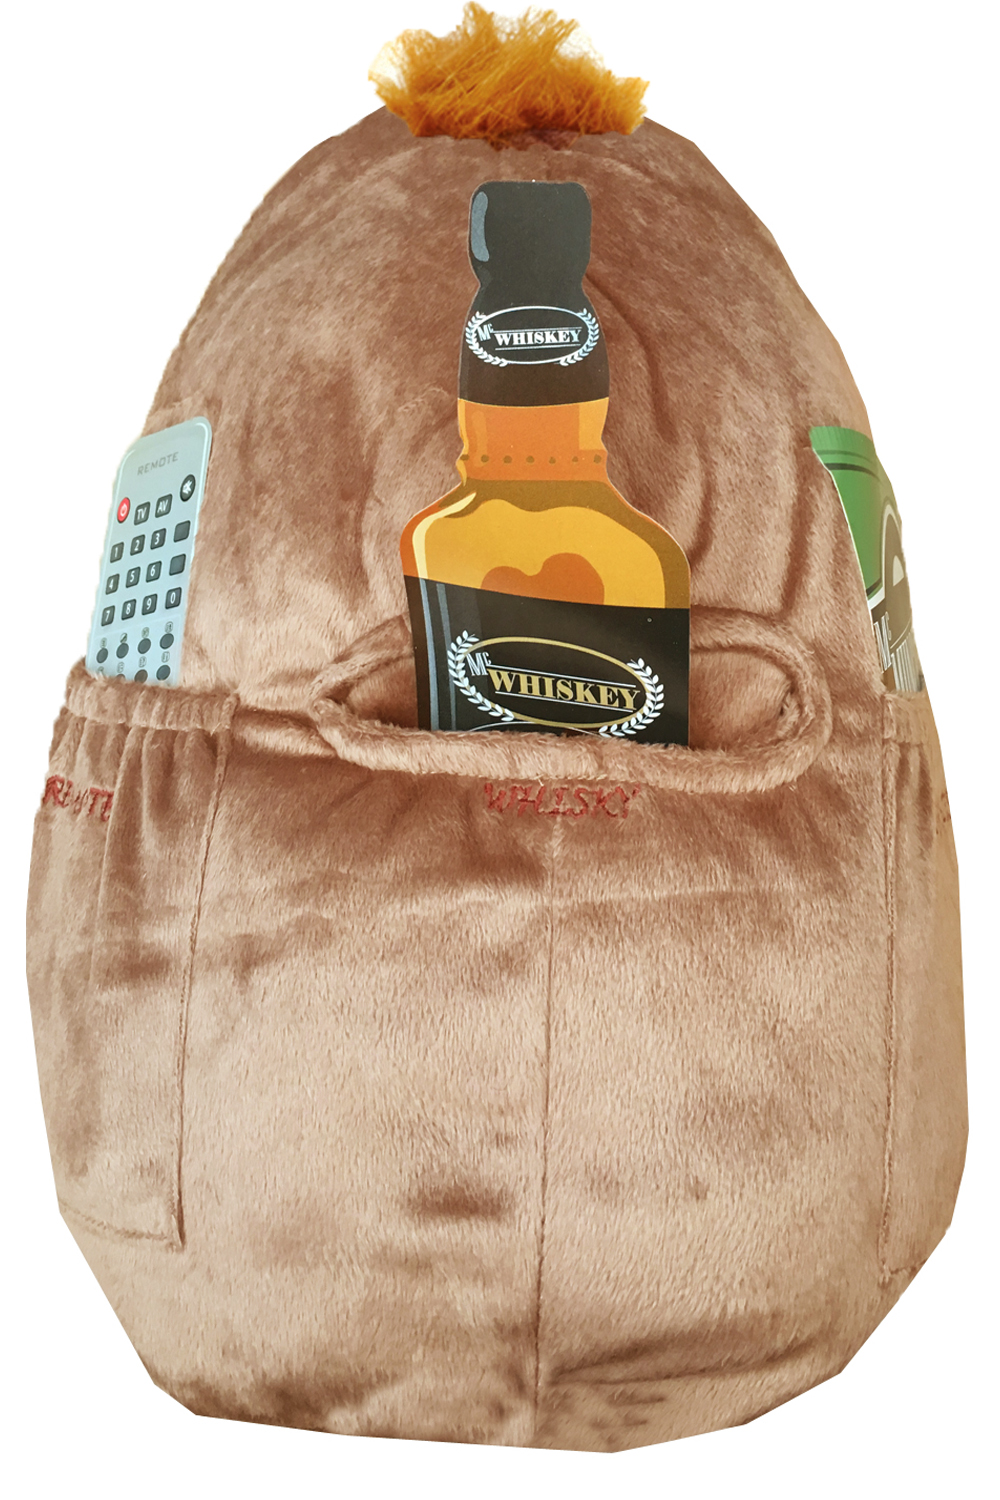 Novelty-Mac-Spuddy-Couch-Potato-Remote-Snack-Holder-Scottish-Pocket-Cushion thumbnail 5